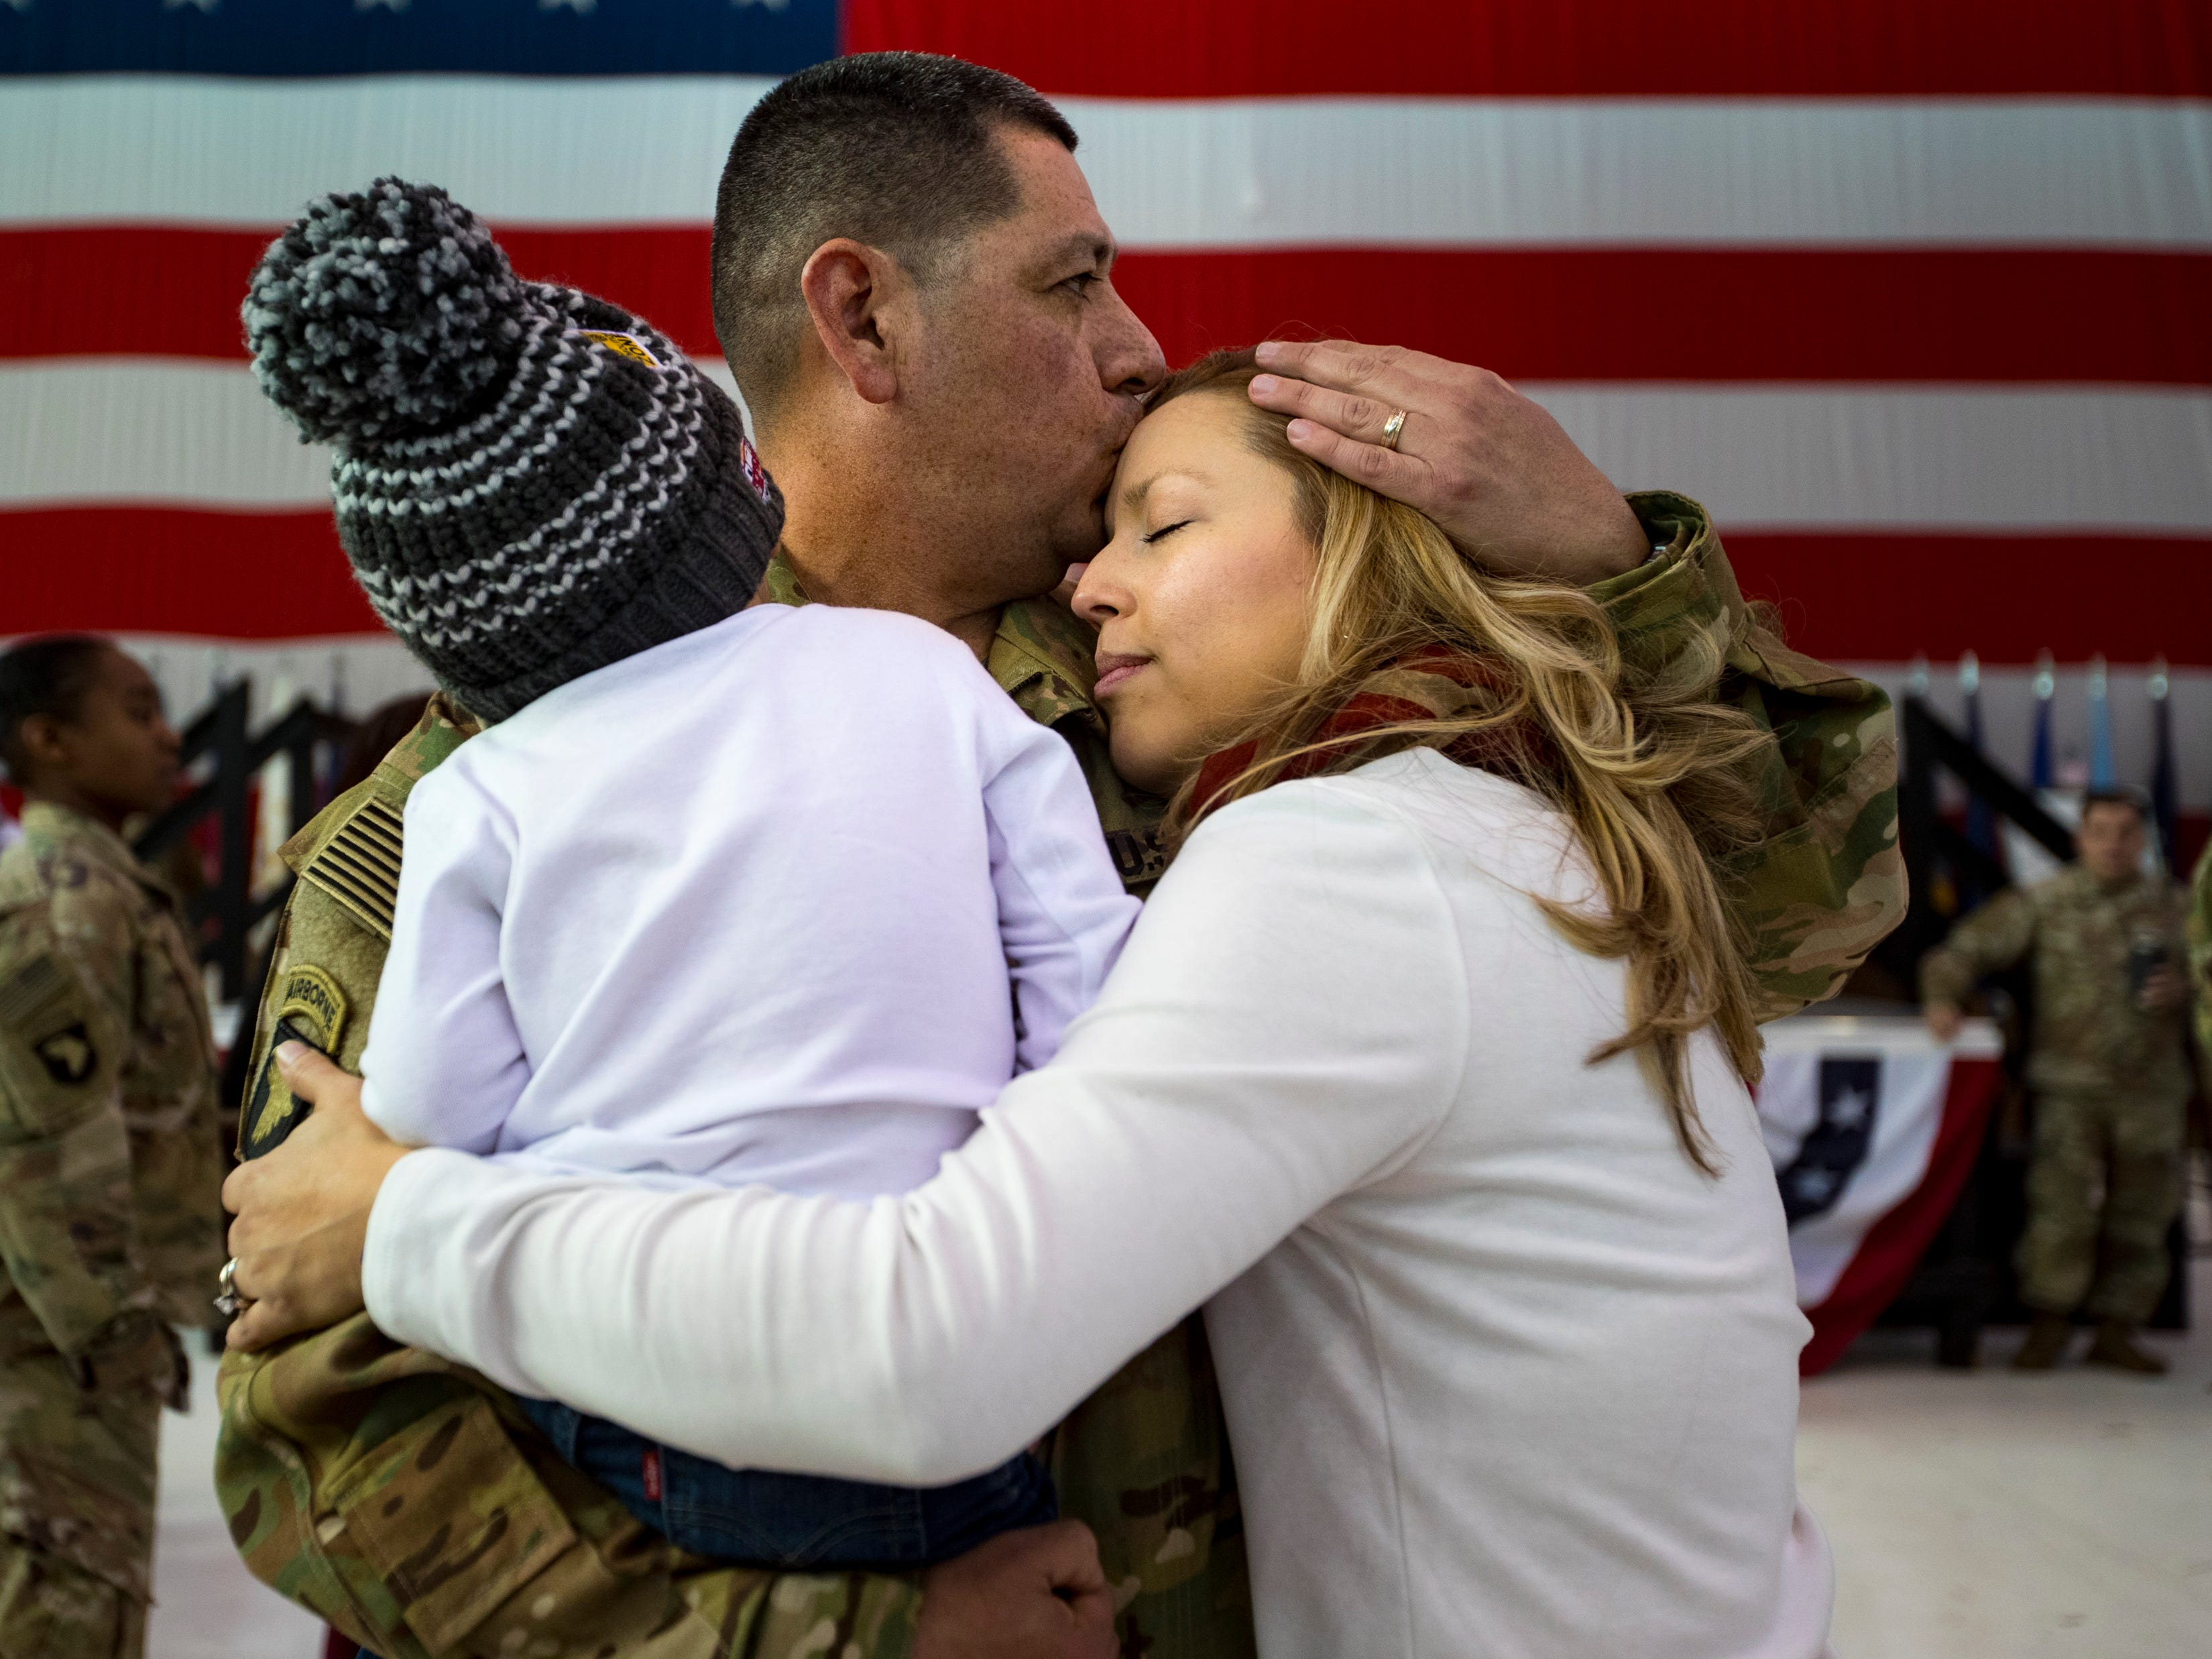 Gustavo Canales kisses Scarleth Canales while holding Raul Canales, 3, during a homecoming ceremony for members of the 101st Combat Aviation Brigade and 101st Sustainment Brigade at Fort Campbell in Clarksville on Thursday, Feb. 21, 2019. The soldiers were returning from a nine-month deployment to Afghanistan.